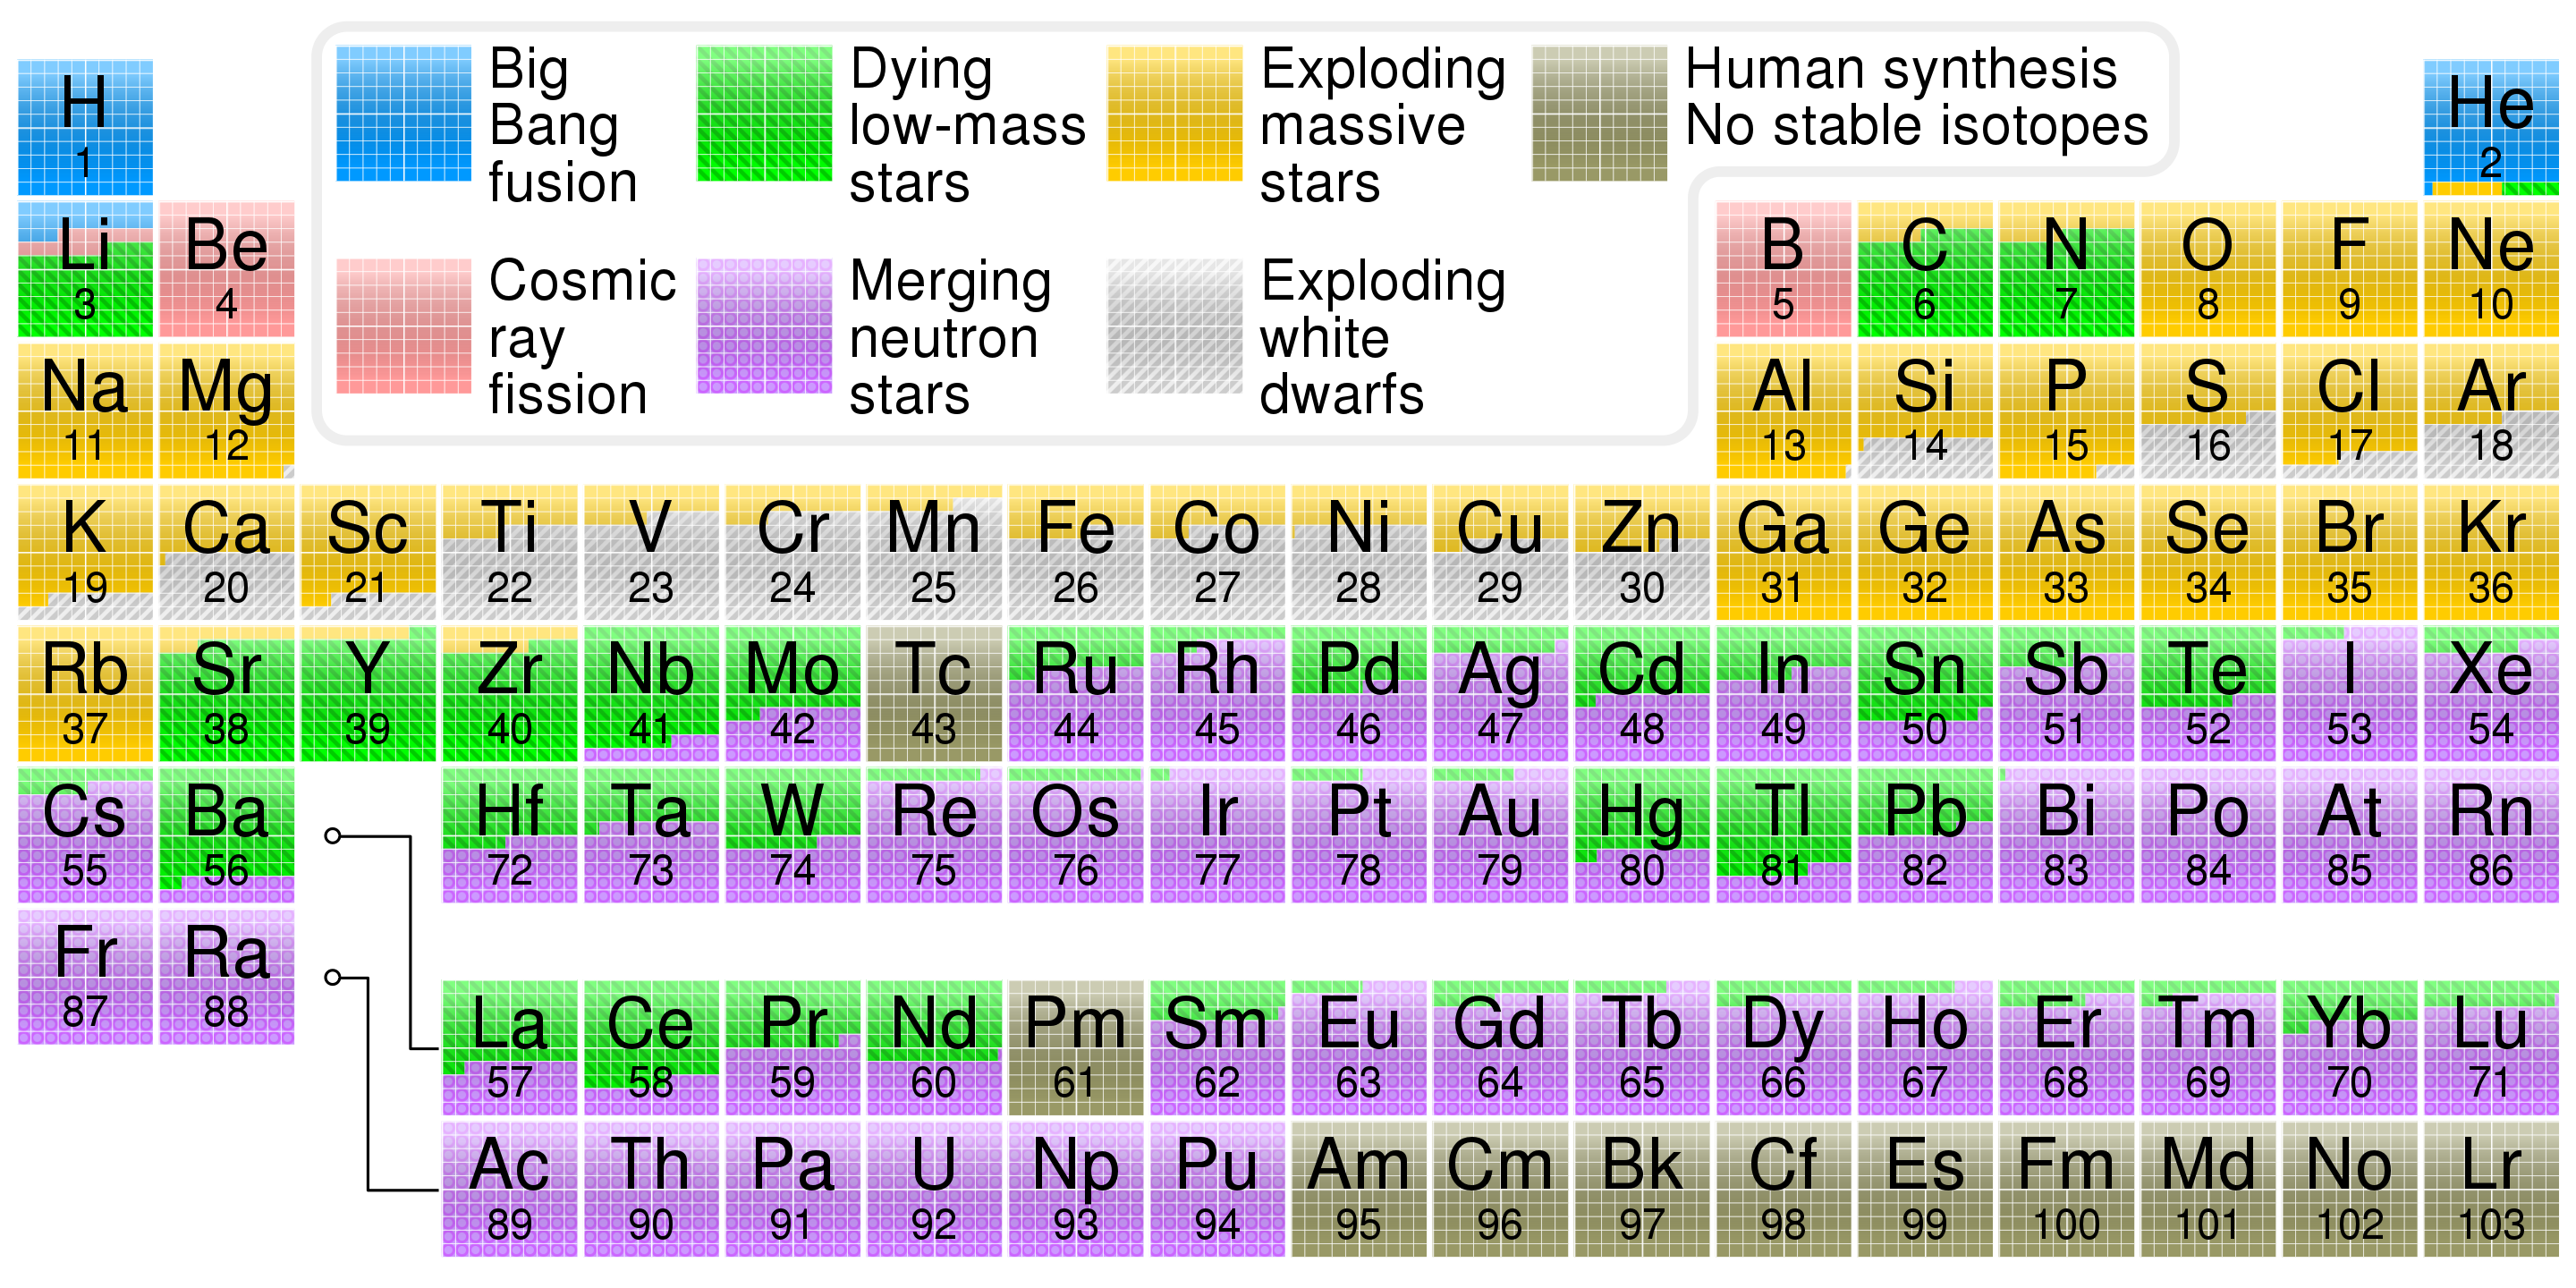 a color-coded periodic table, where colors indicate the elements' origins.